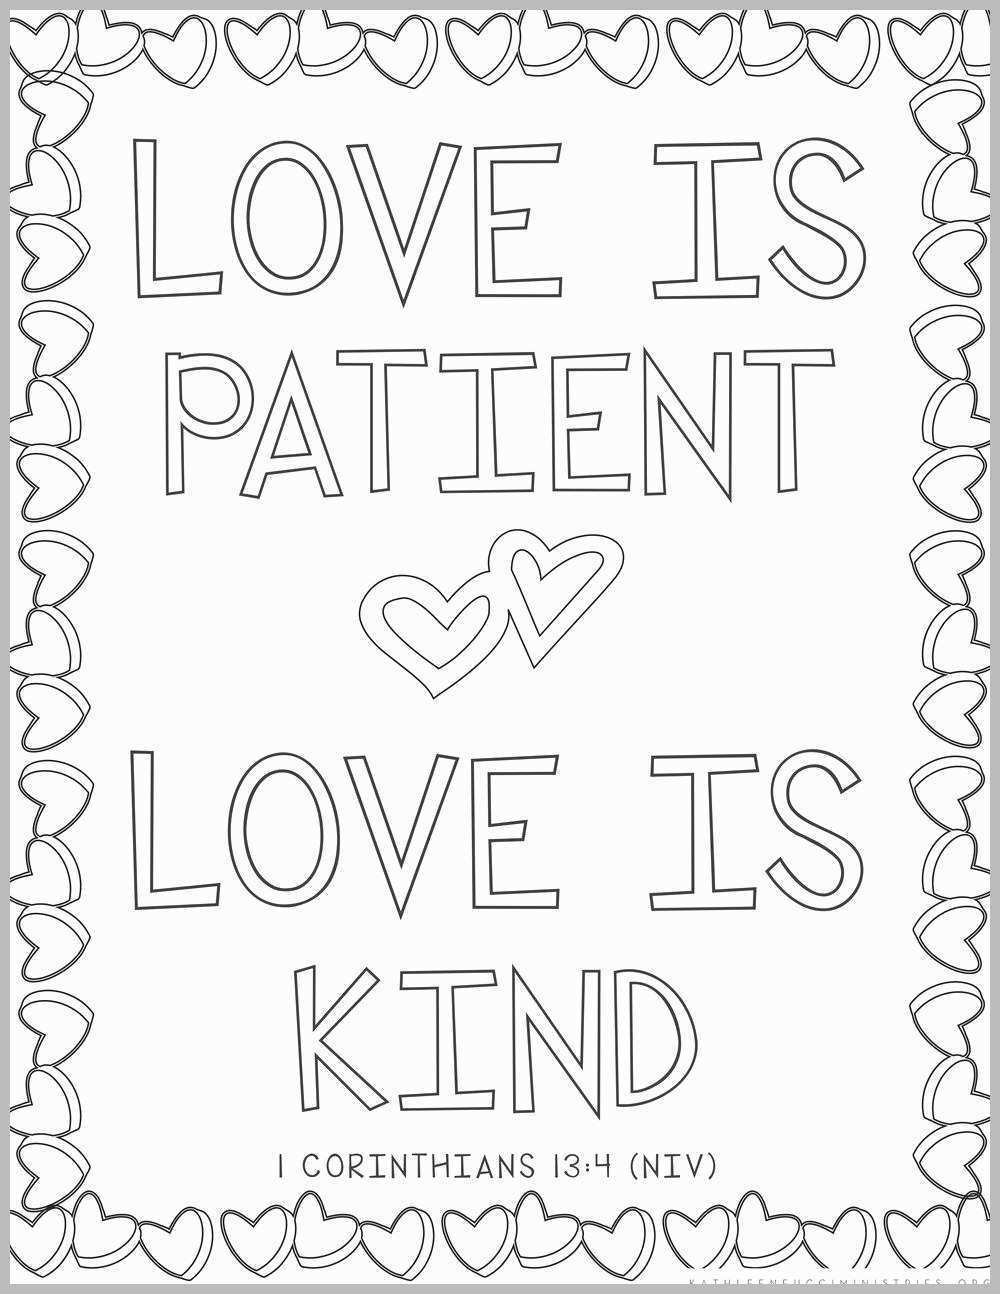 Coloring Pages ~ Free Printable Bible Coloring Pages With Scriptures - Free Printable Bible Coloring Pages With Scriptures